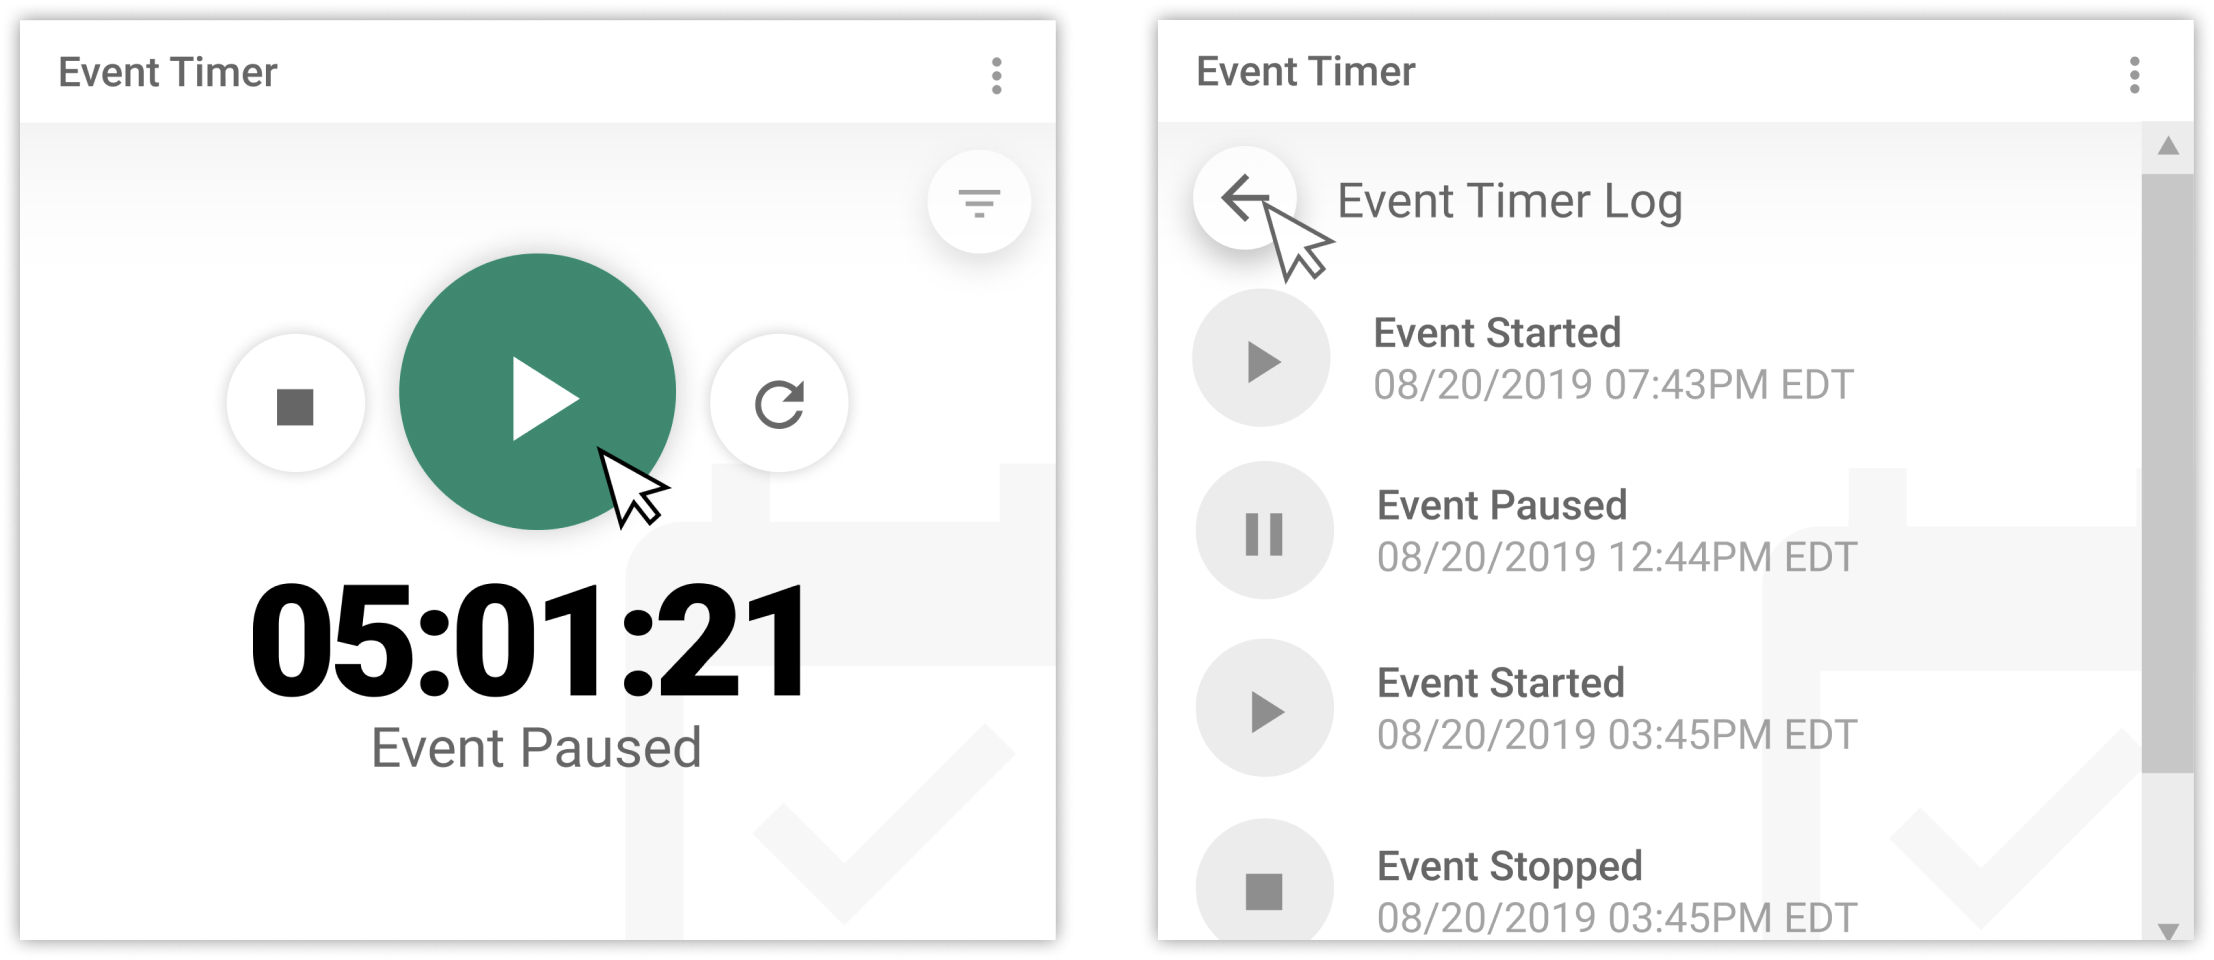 Event Timer